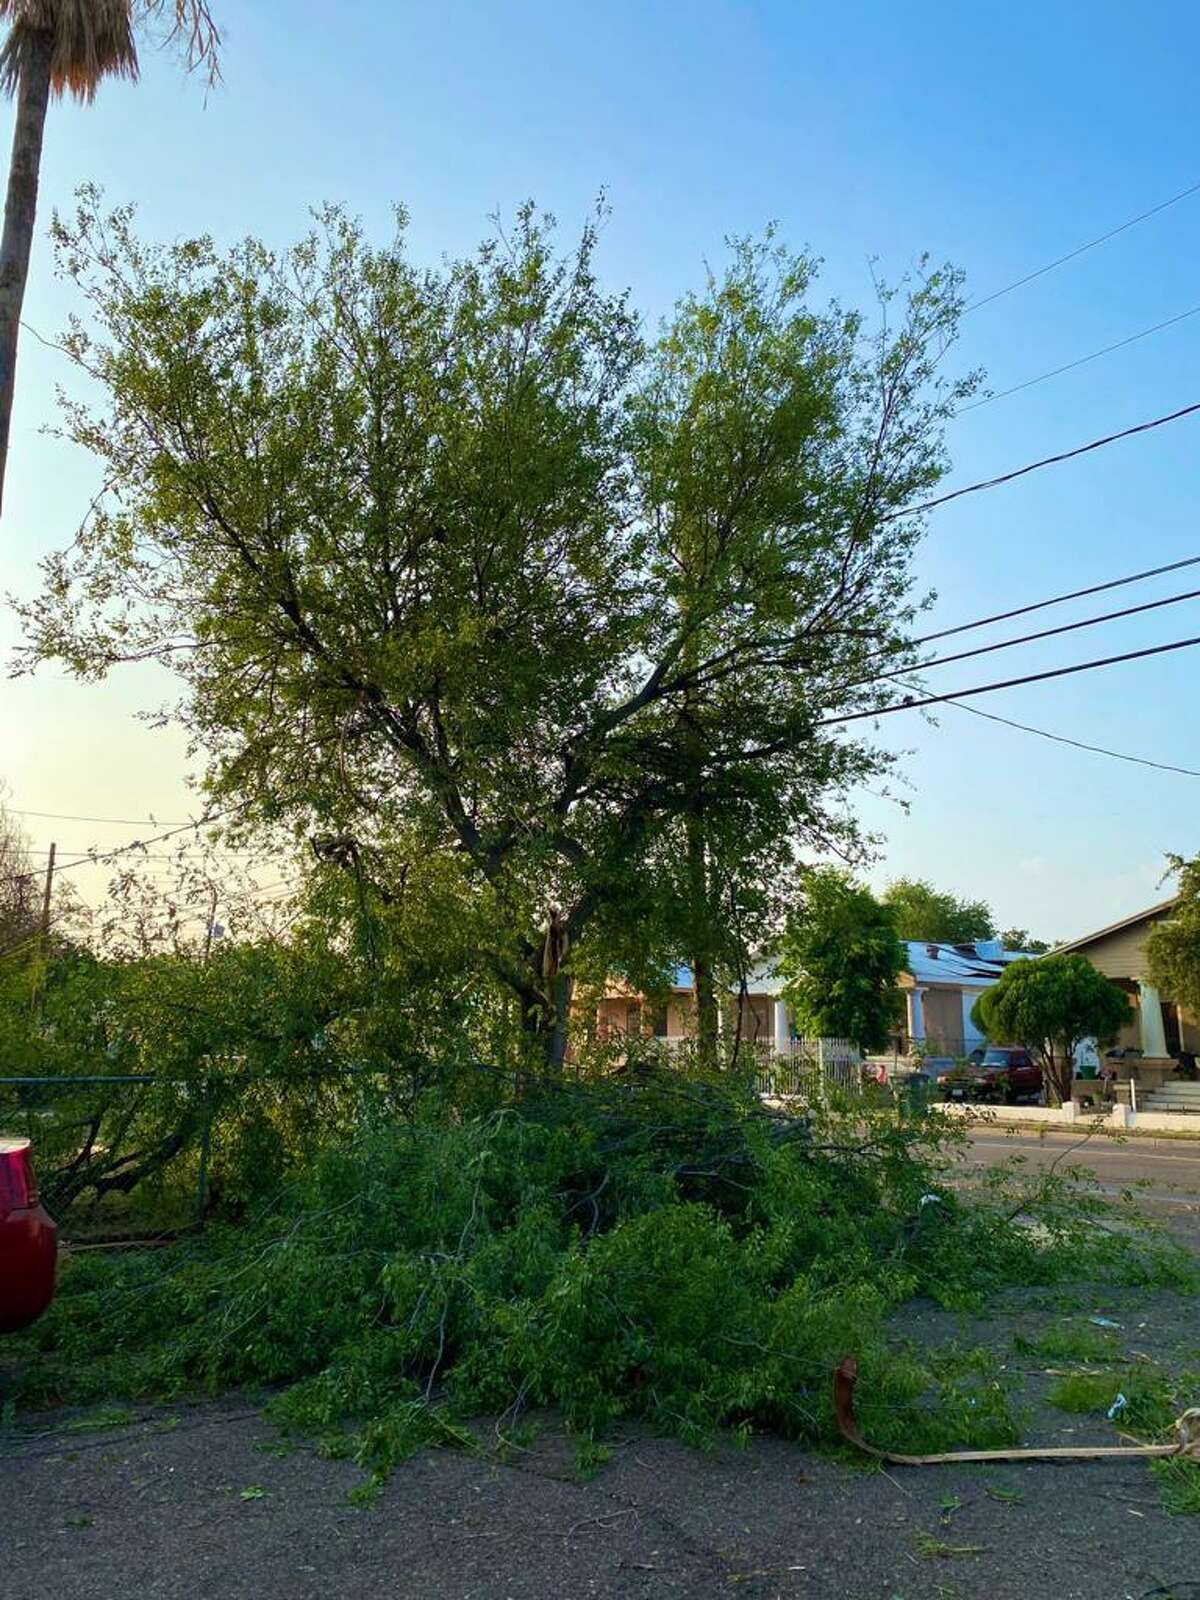 These are the storm damages reported in west Laredo.